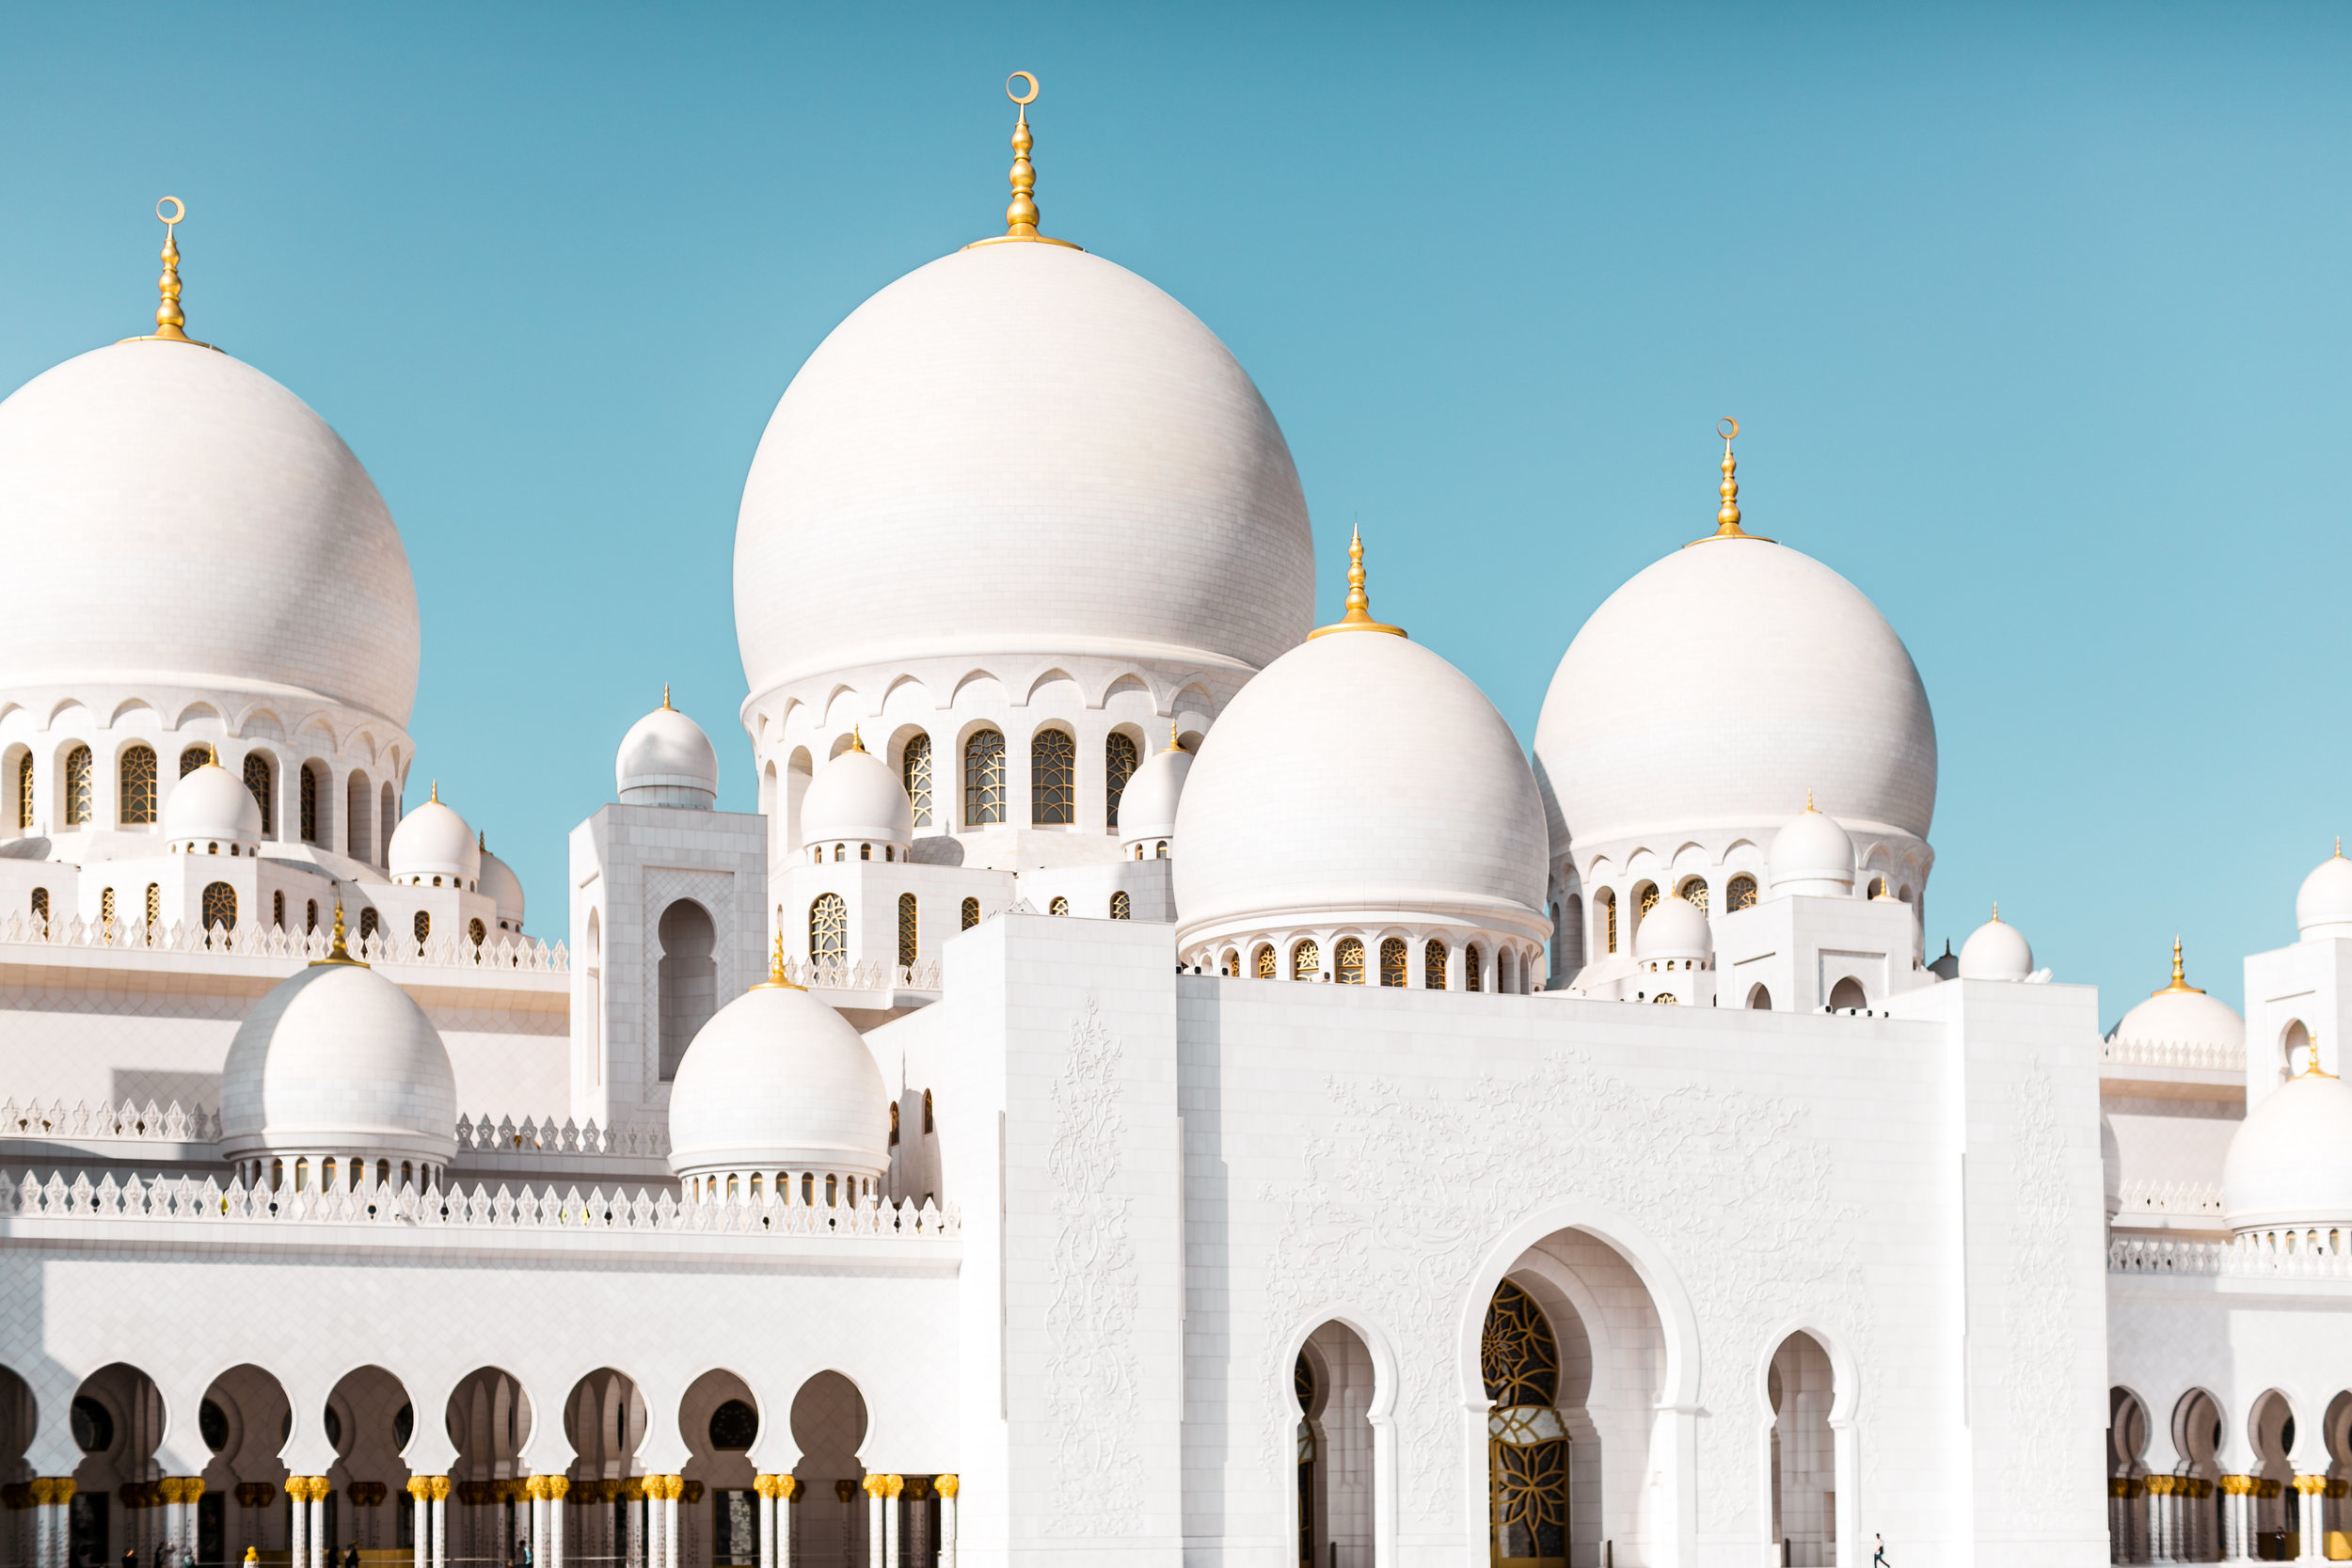 Abu Dhabi for slideshow carousel-1.jpg